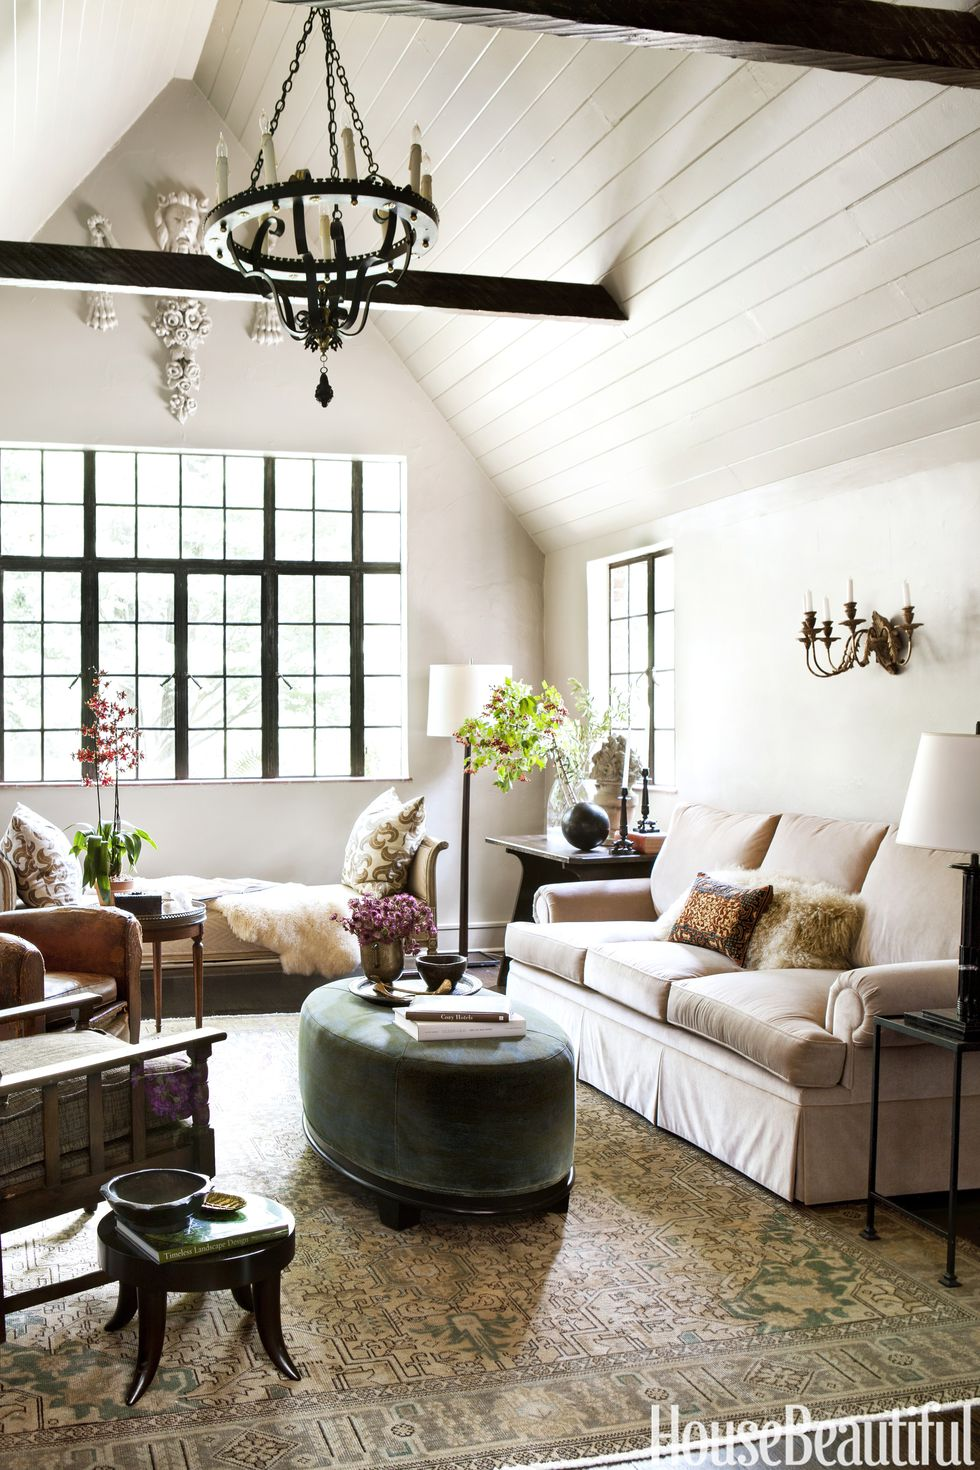 Source : https://www.housebeautiful.com/design-inspiration/house-tours/g4141/shon-parker-atlanta-house/?slide=5